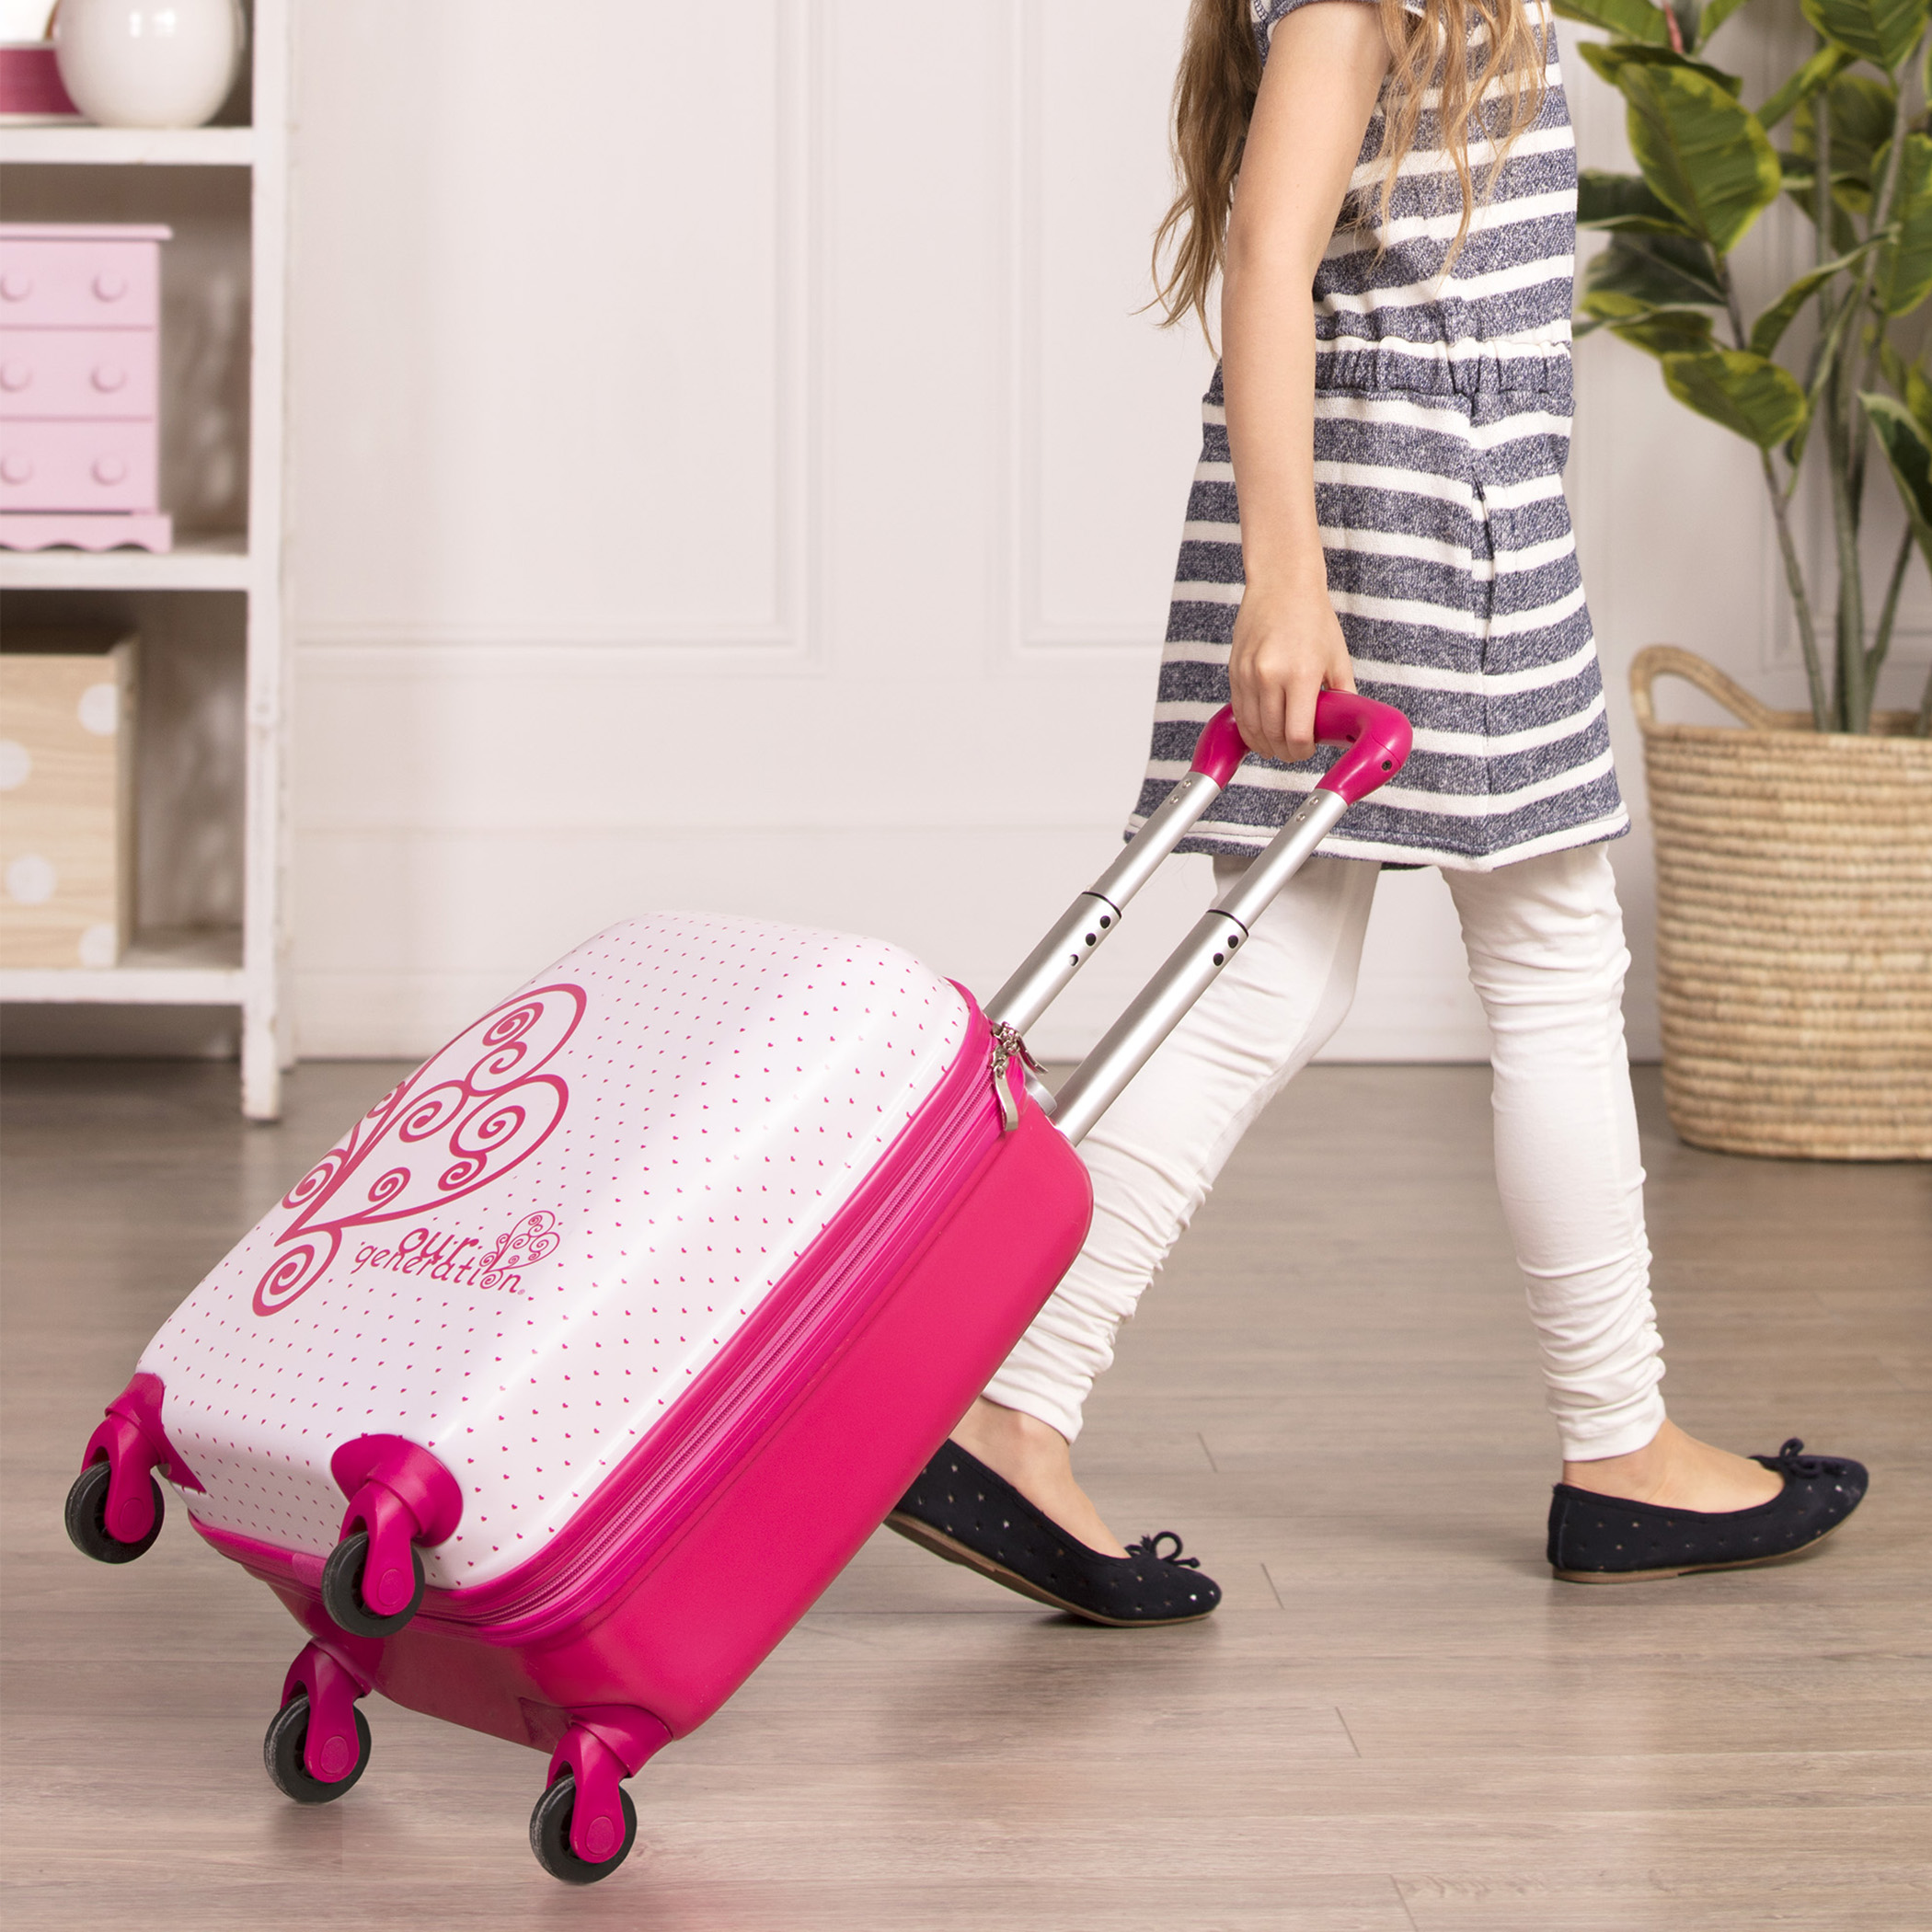 Carry On Dreaming girl pulling suitcase